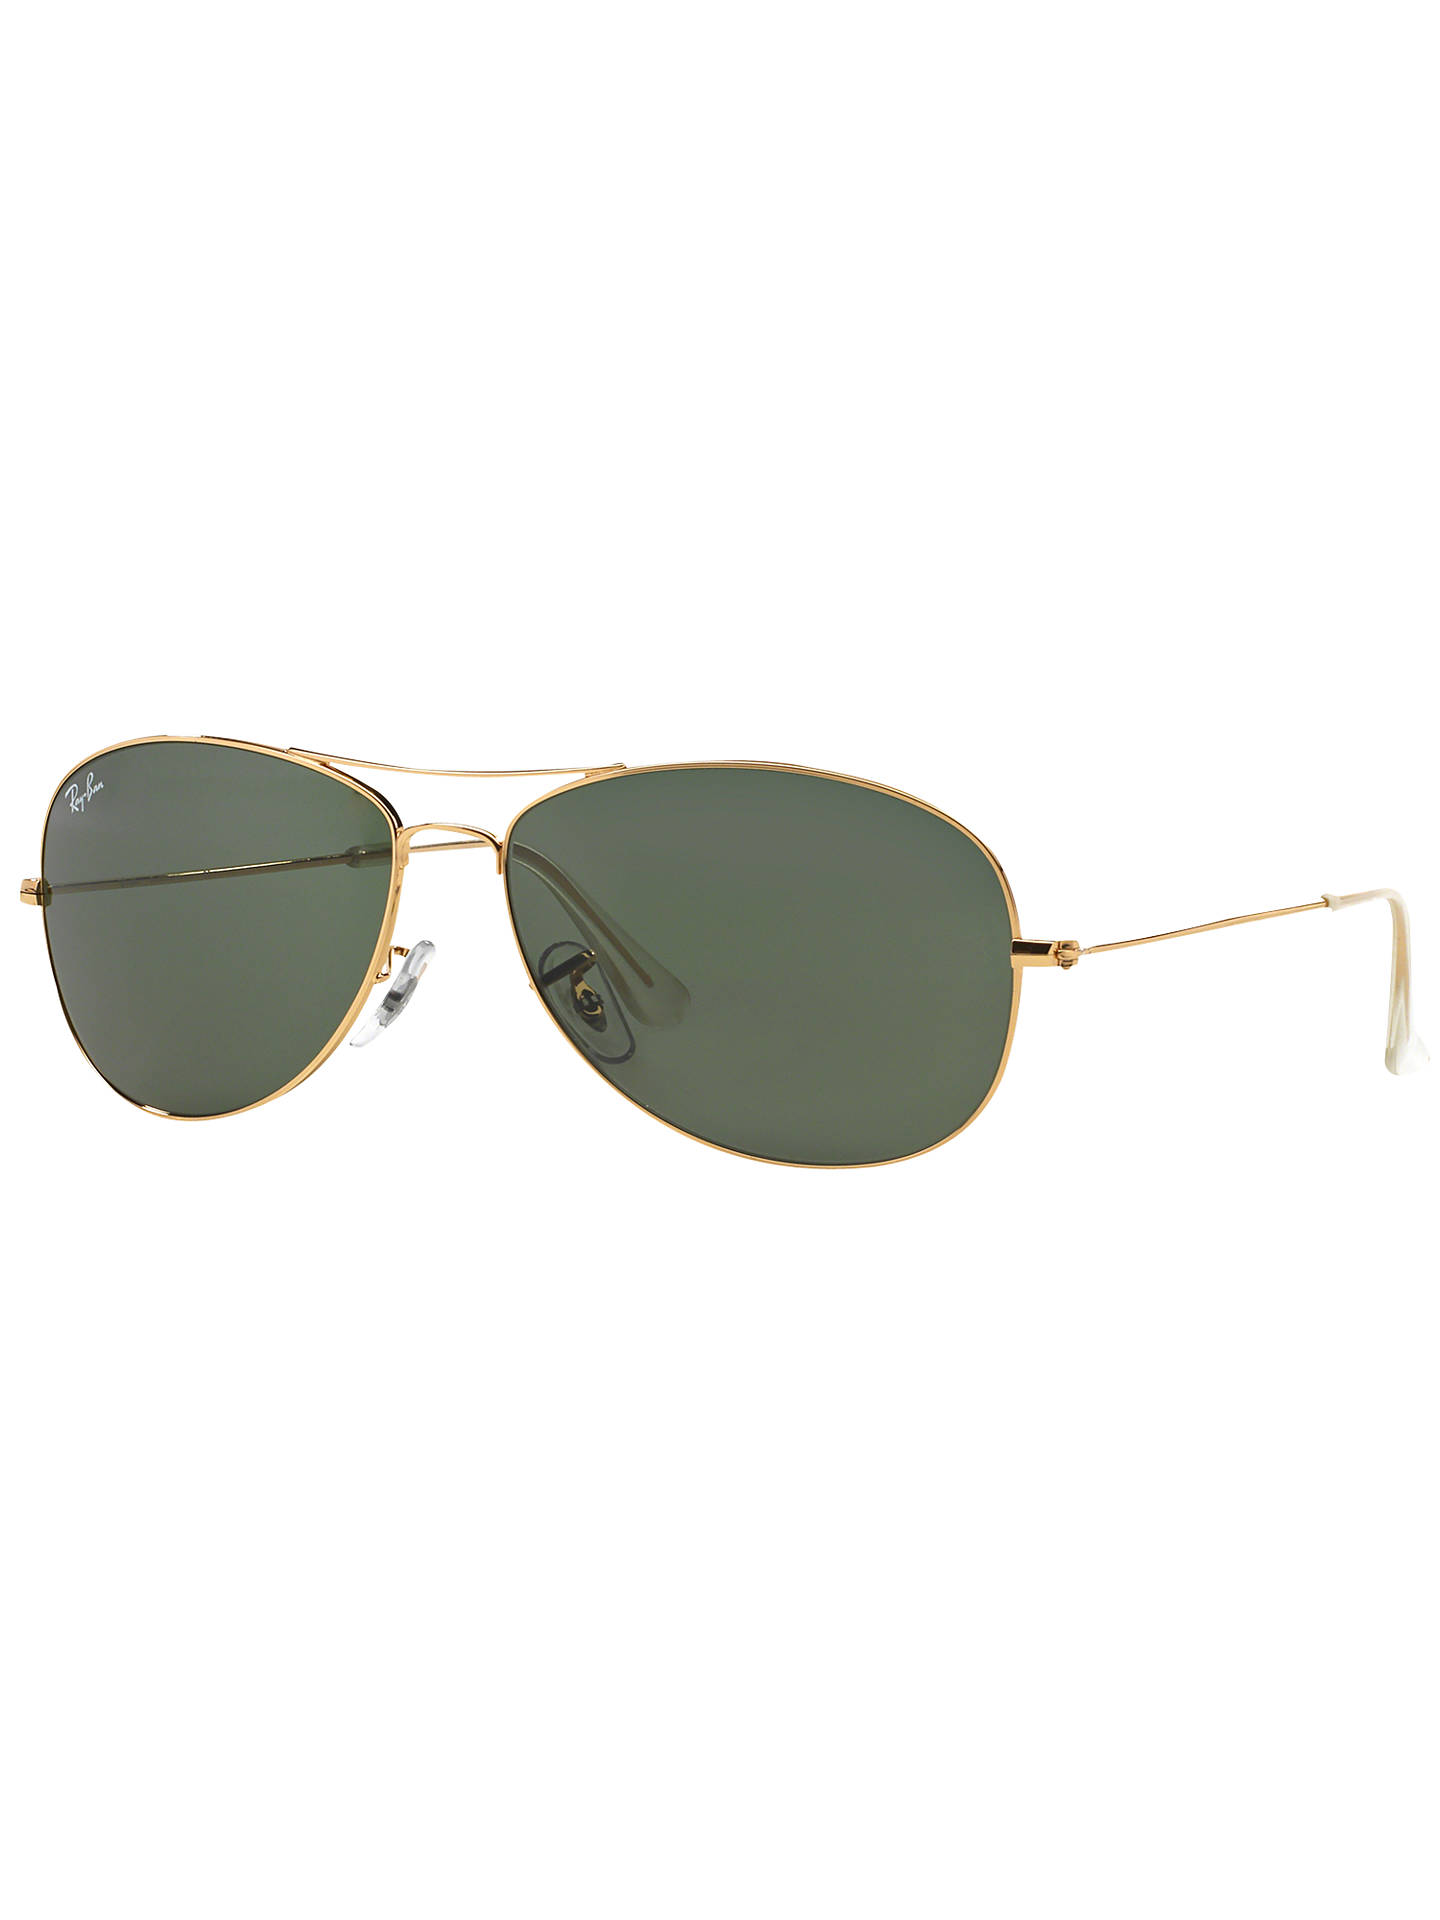 c1ff3986363 Previous Image Next Image. BuyRay-Ban RB3362 Cockpit Aviator Sunglasses